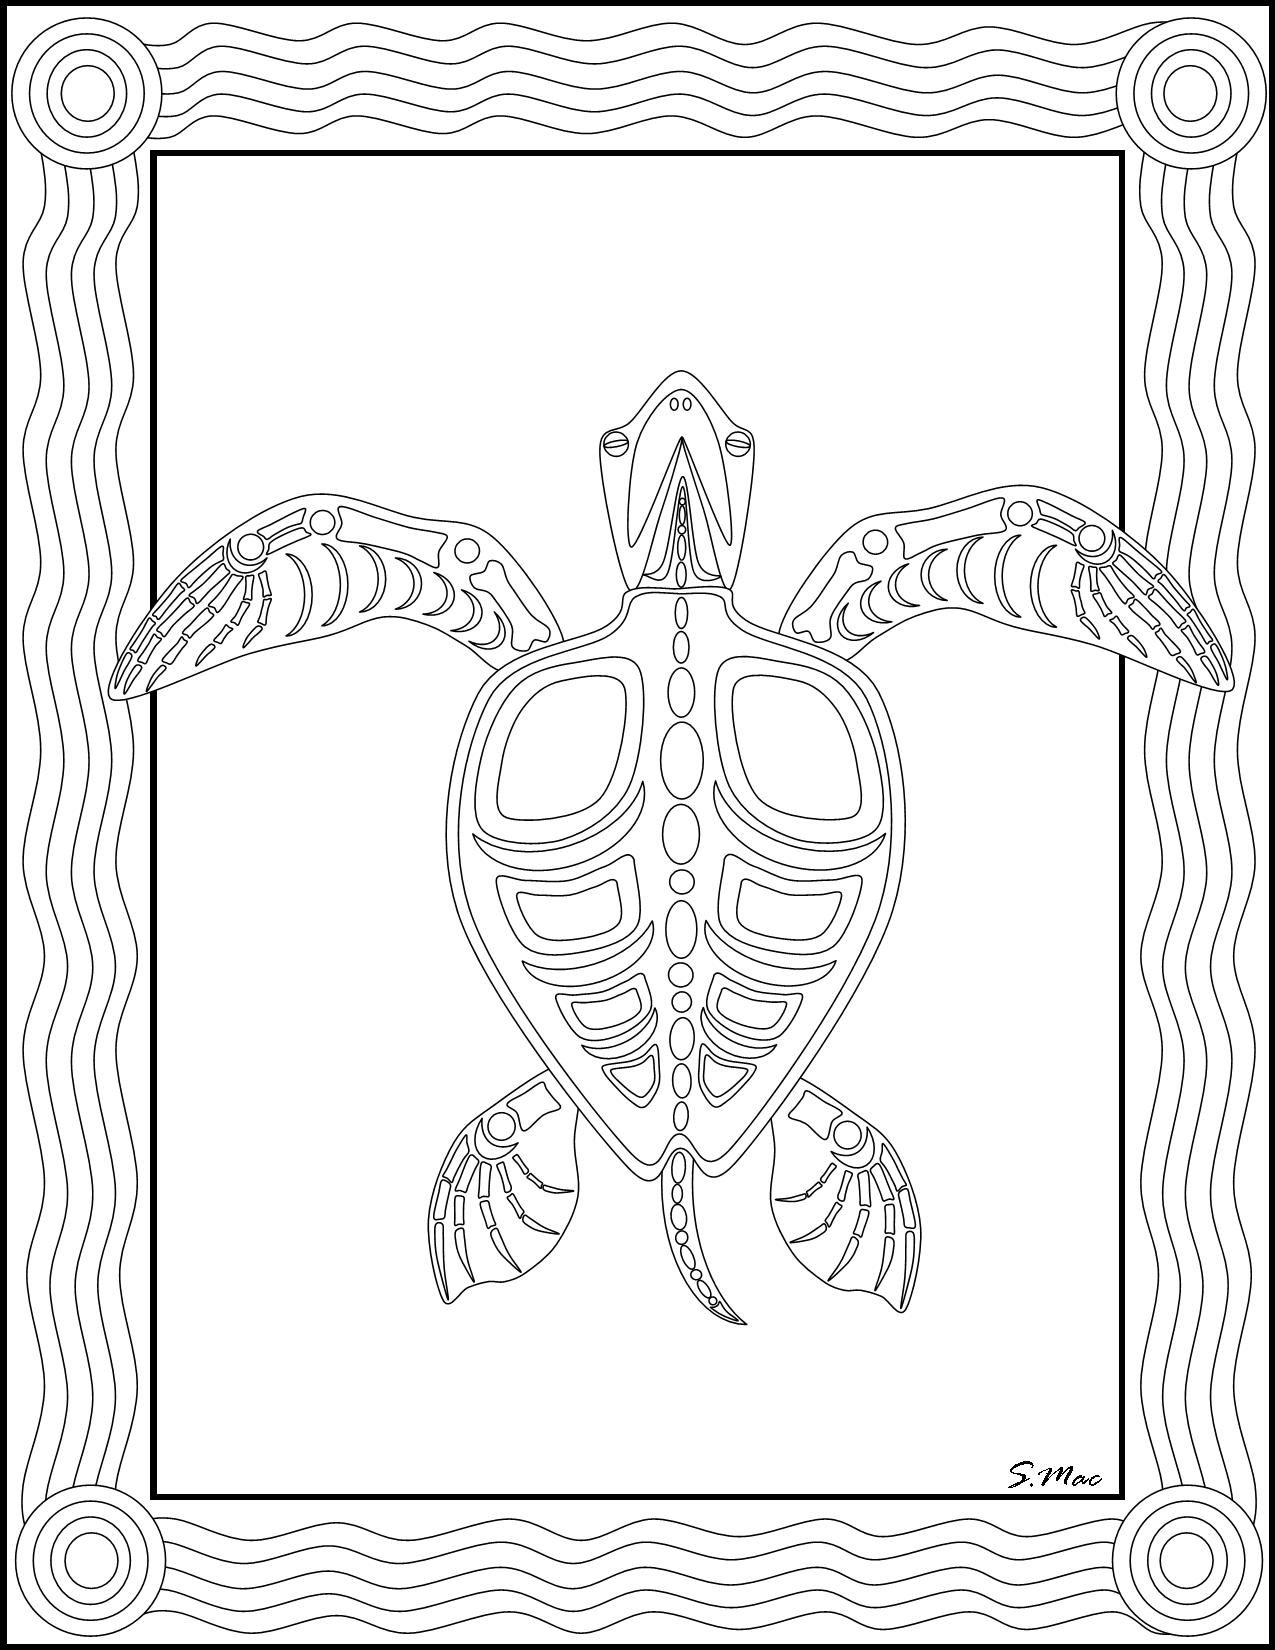 S.mac's Sea Turtle X-Ray Art Coloring Page   Art- Coloring Therapy - Free Printable Animal X Rays